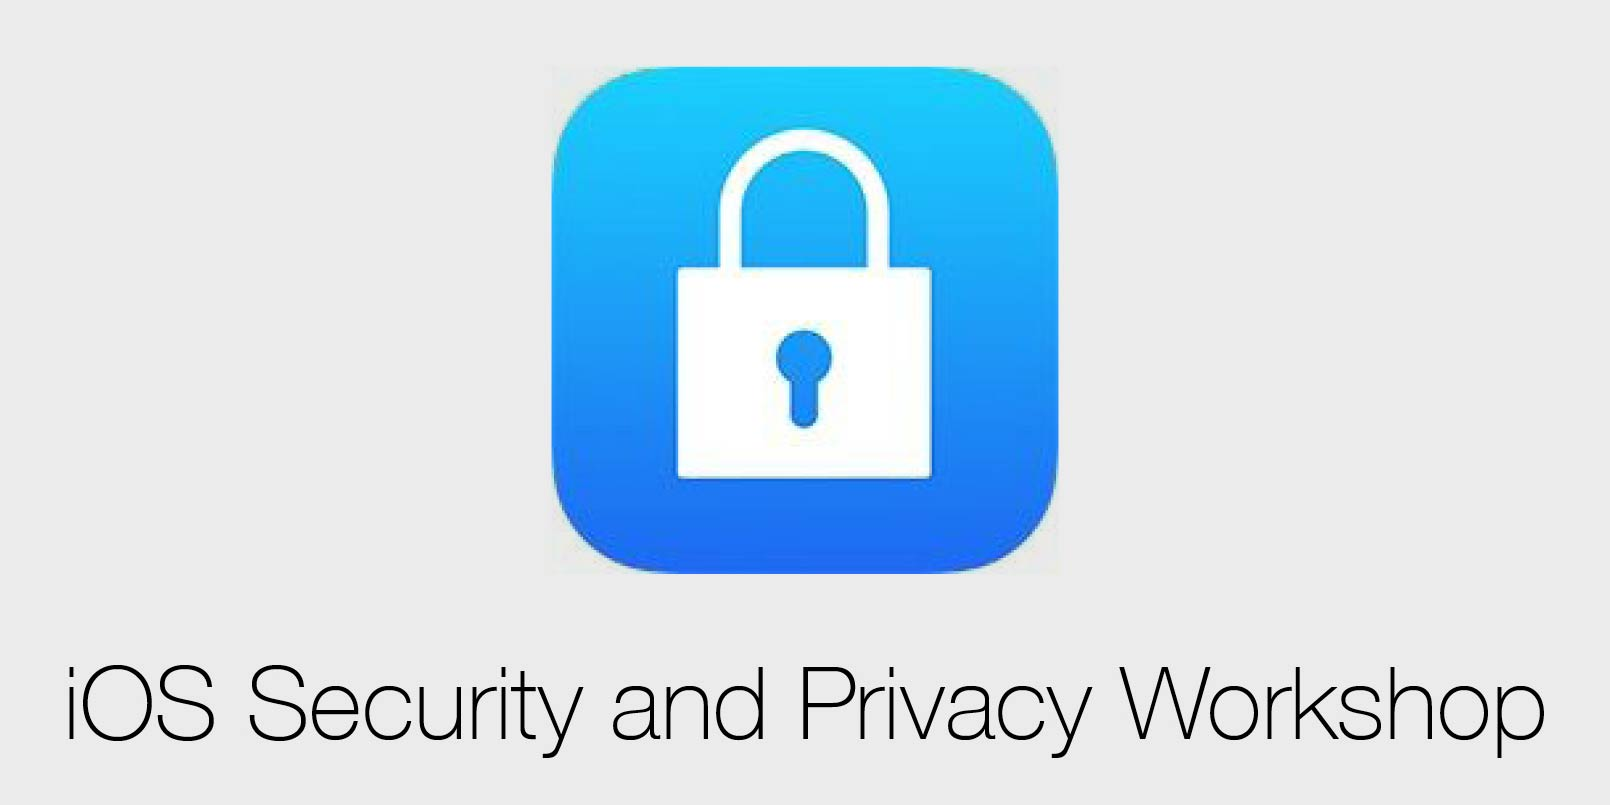 iOS Security and Privacy Workshop